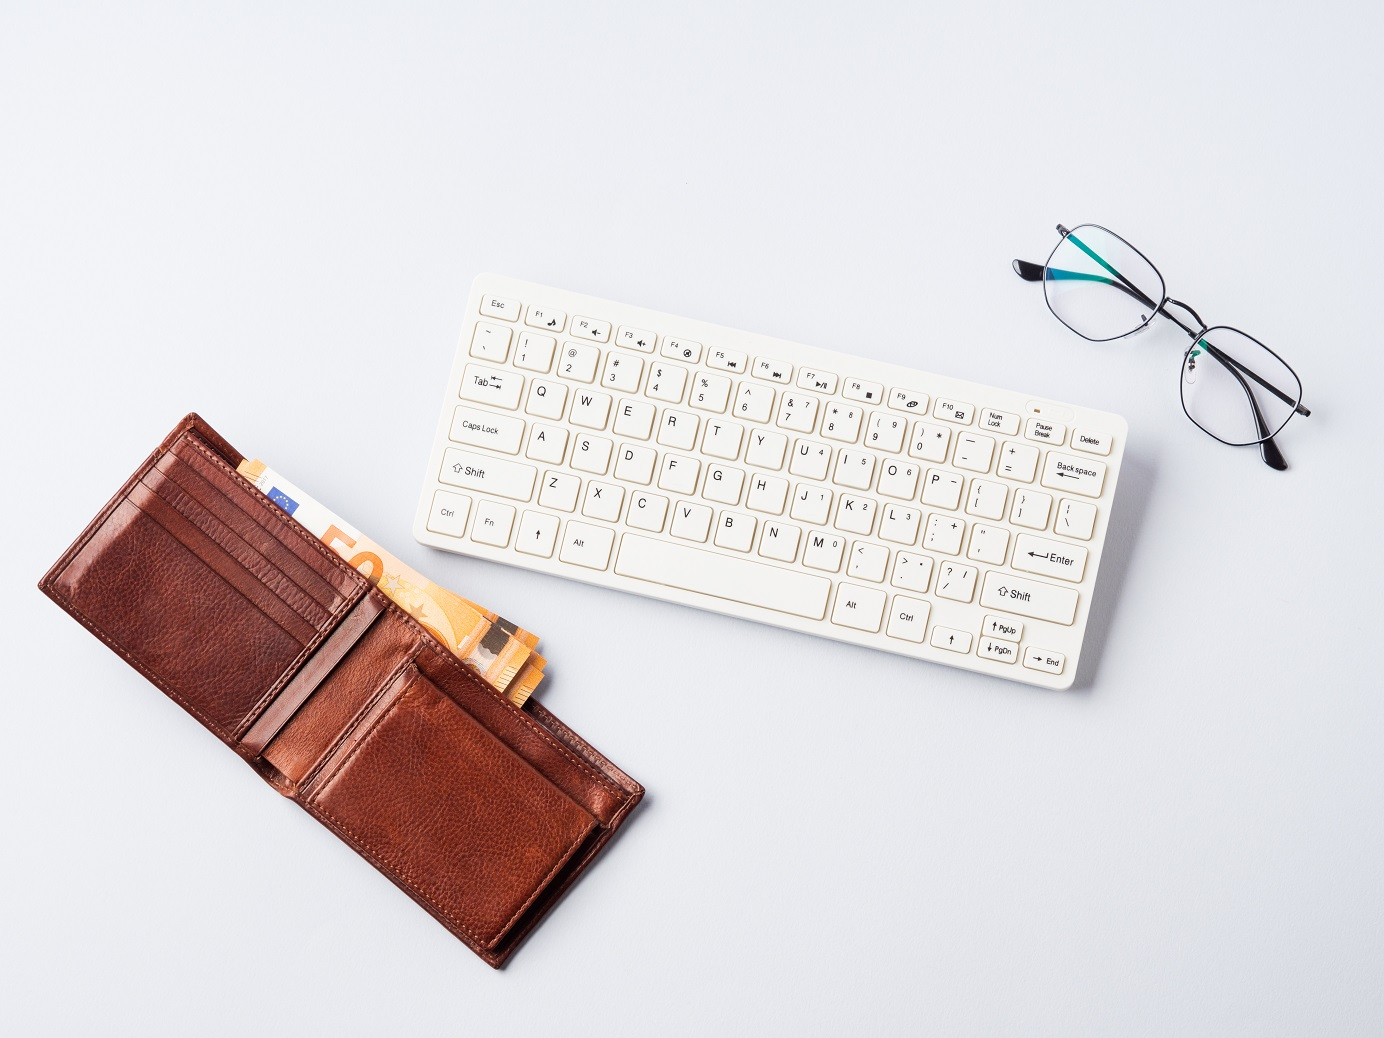 Euro money banknotes in wallet, keyboard and glasses. Online banking, business, student loan concept, financial online investment, smart trading, income earnings concept.